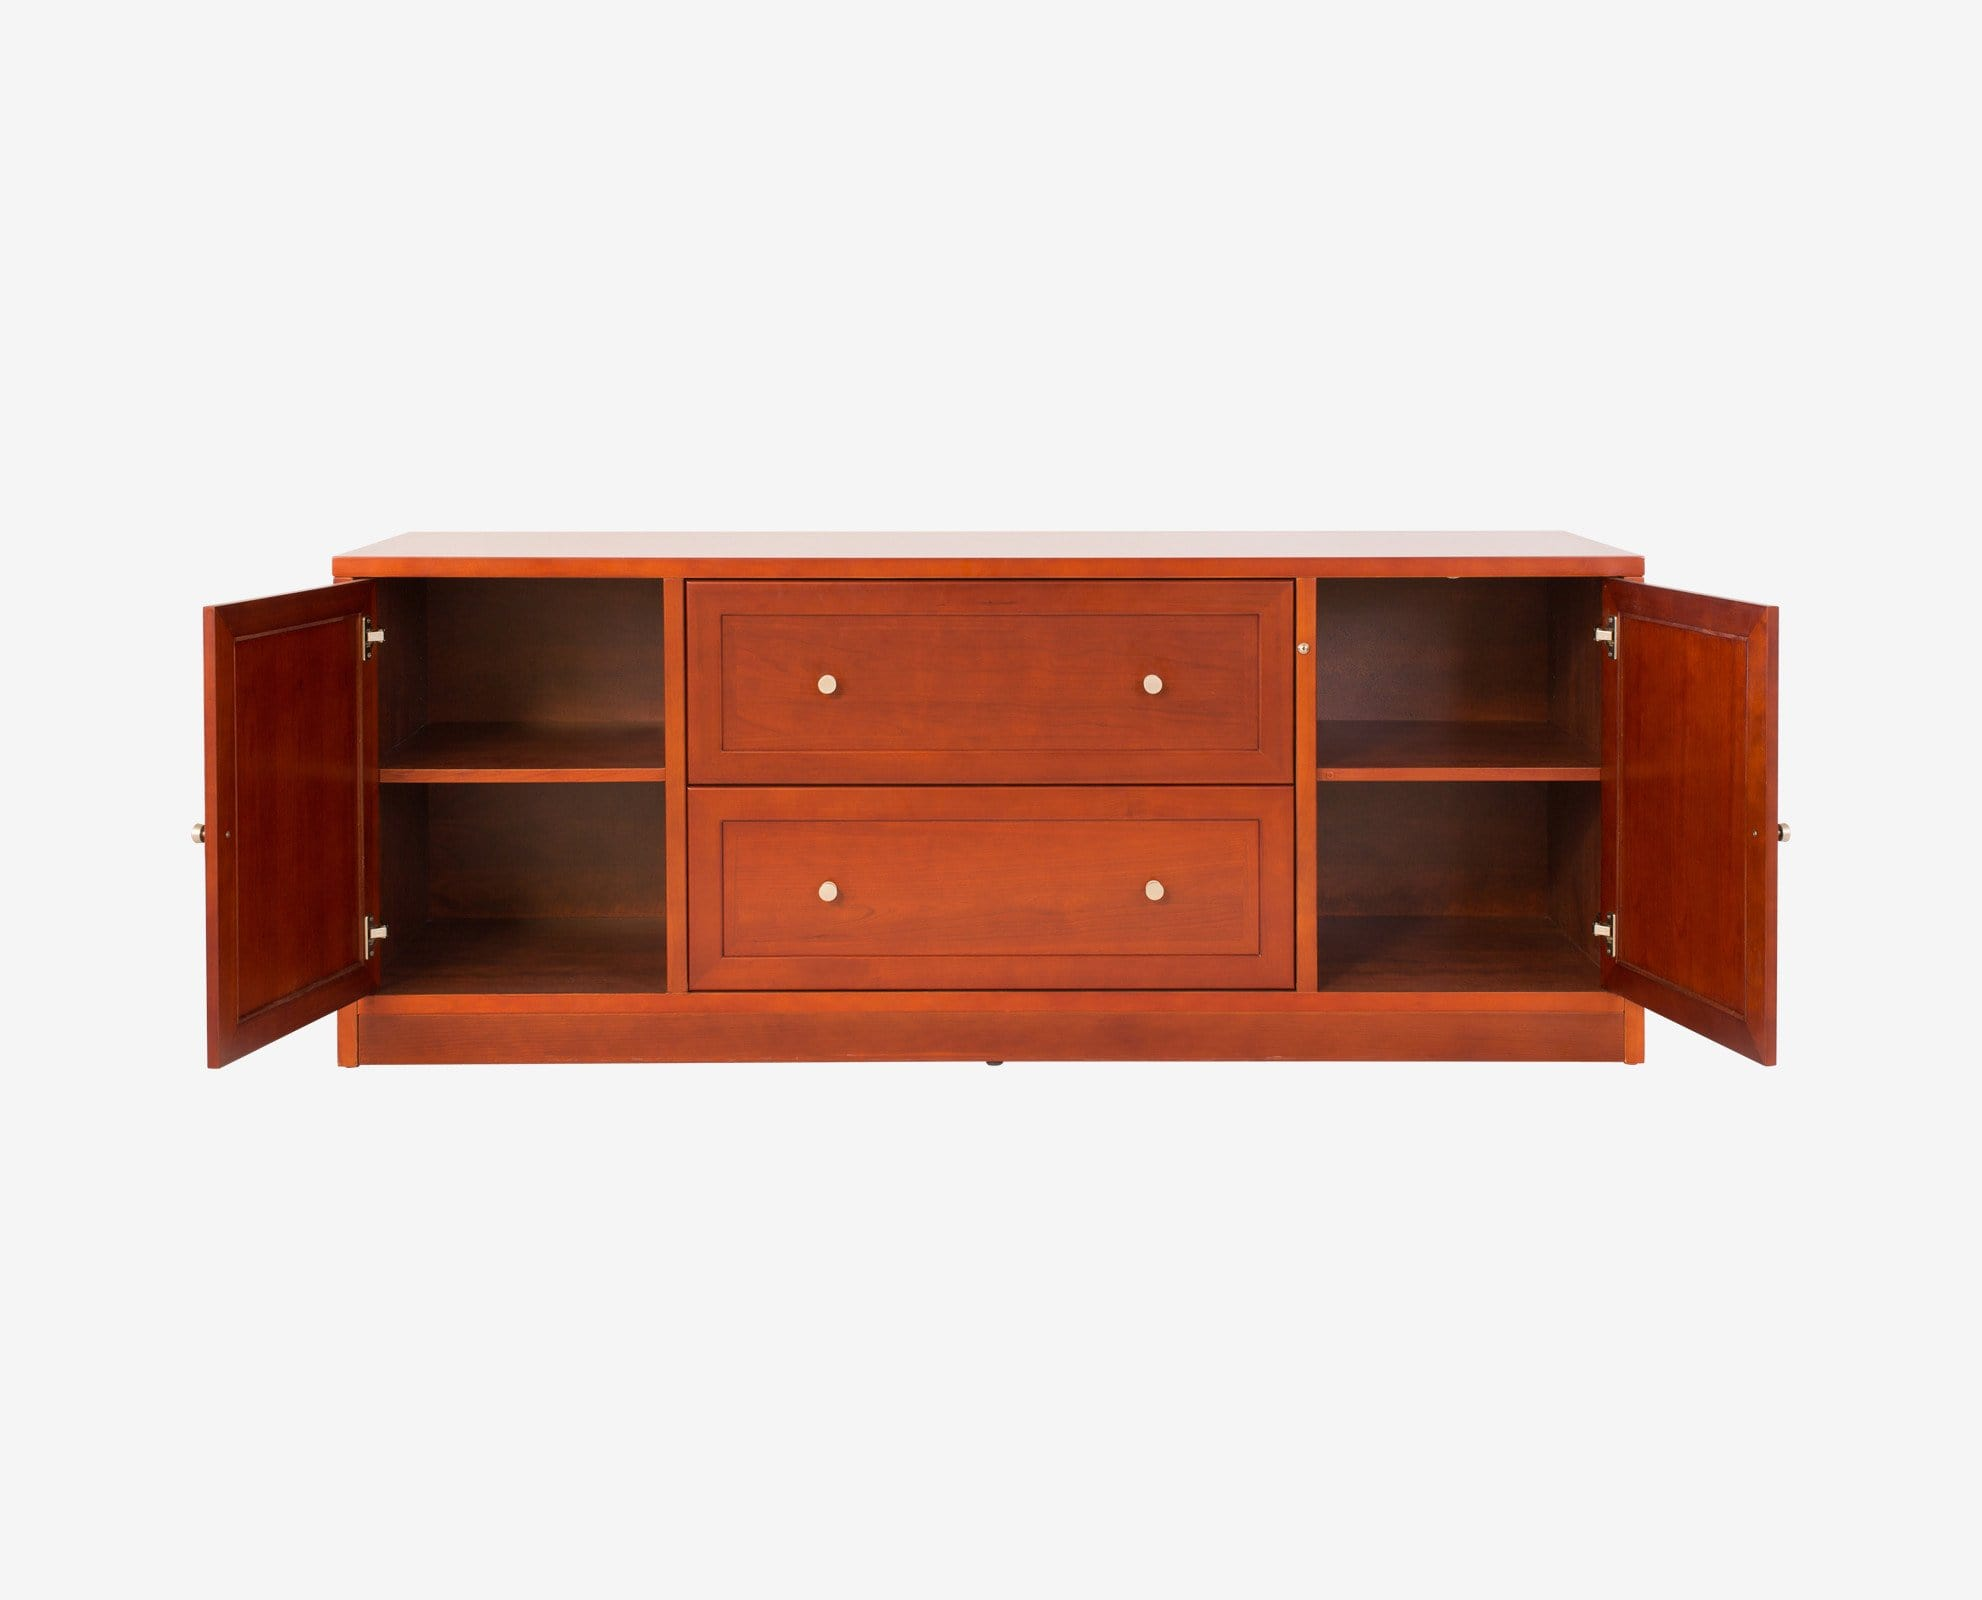 Dining credenza cabinets with drawers